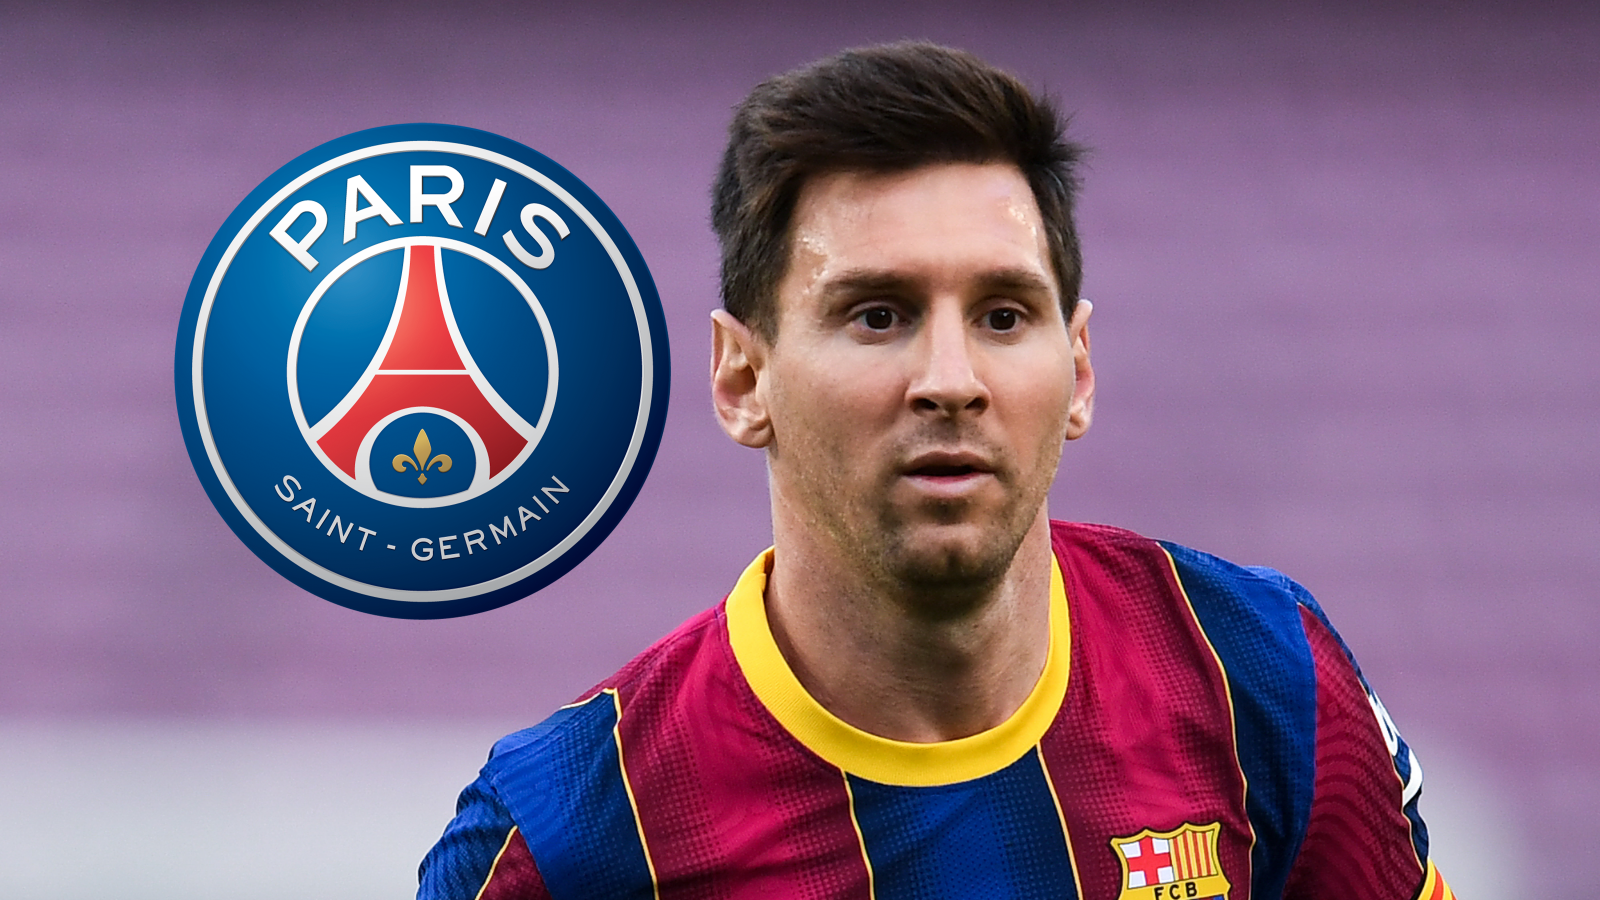 Messi joins PSG on free transfer following emotional Barcelona departure